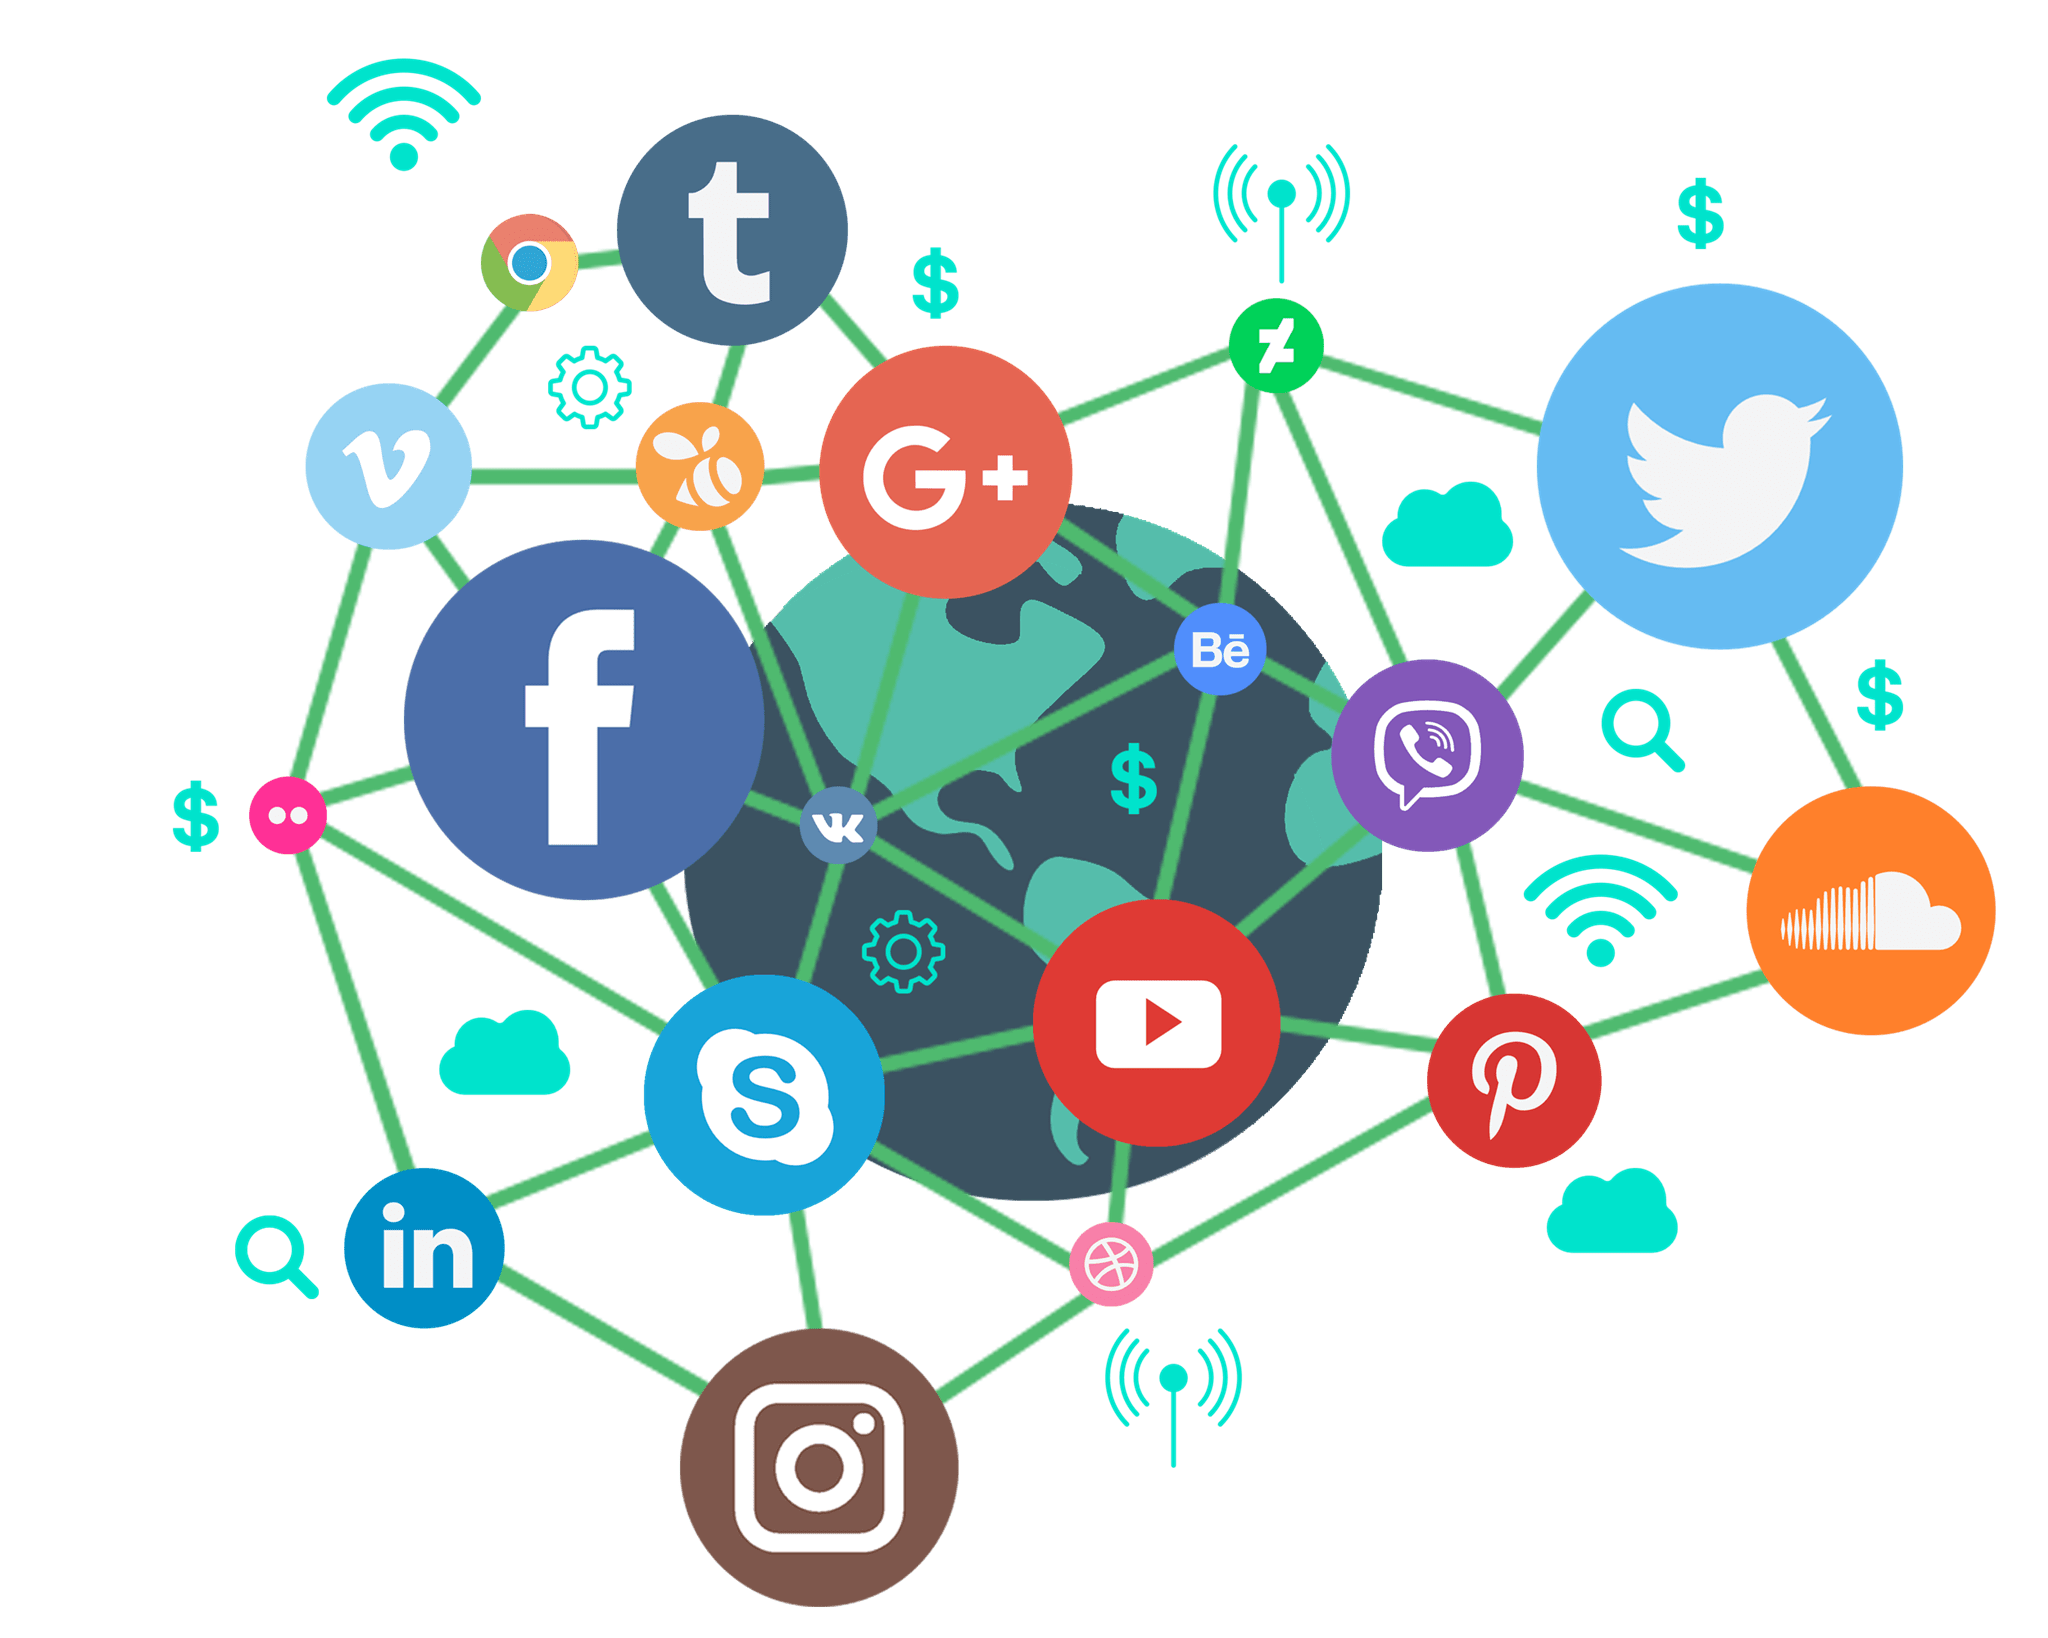 Social Media Marketing – The Key To Drive Targeted Traffic To The Webpage